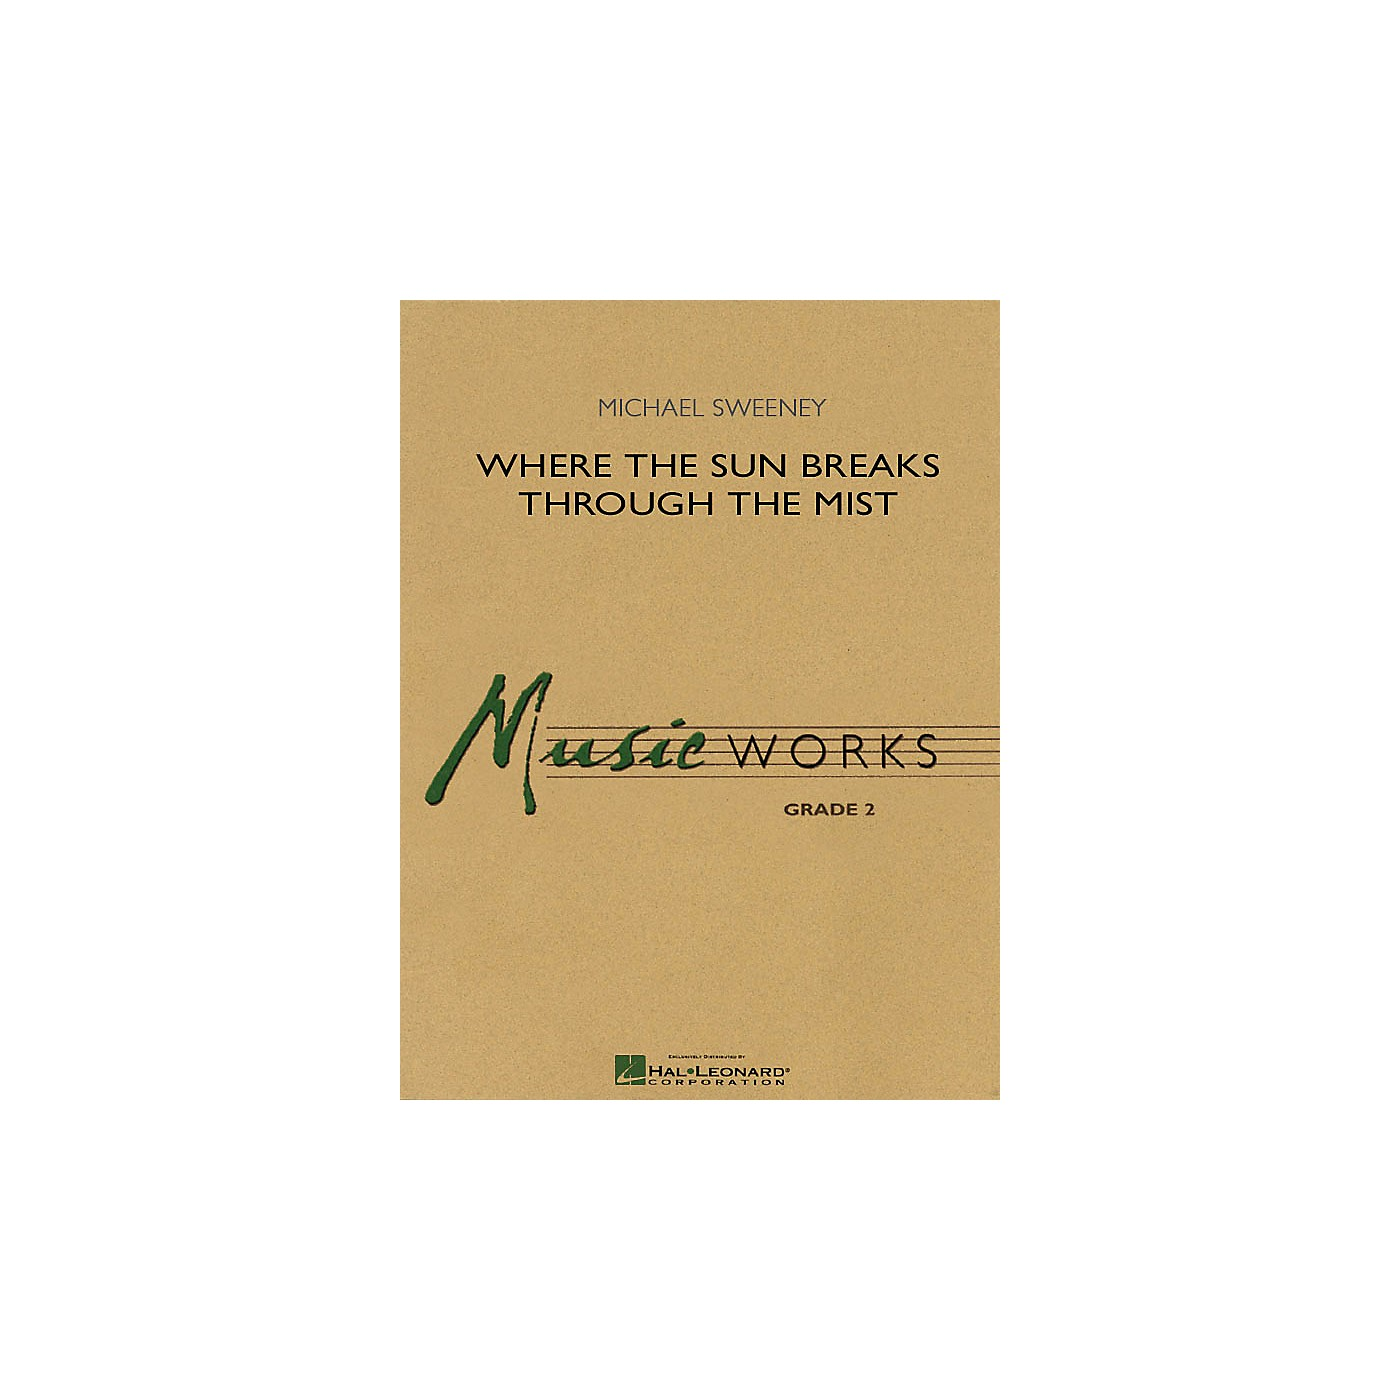 Hal Leonard Where the Sun Breaks Through the Mist Concert Band Level 2 Composed by Michael Sweeney thumbnail